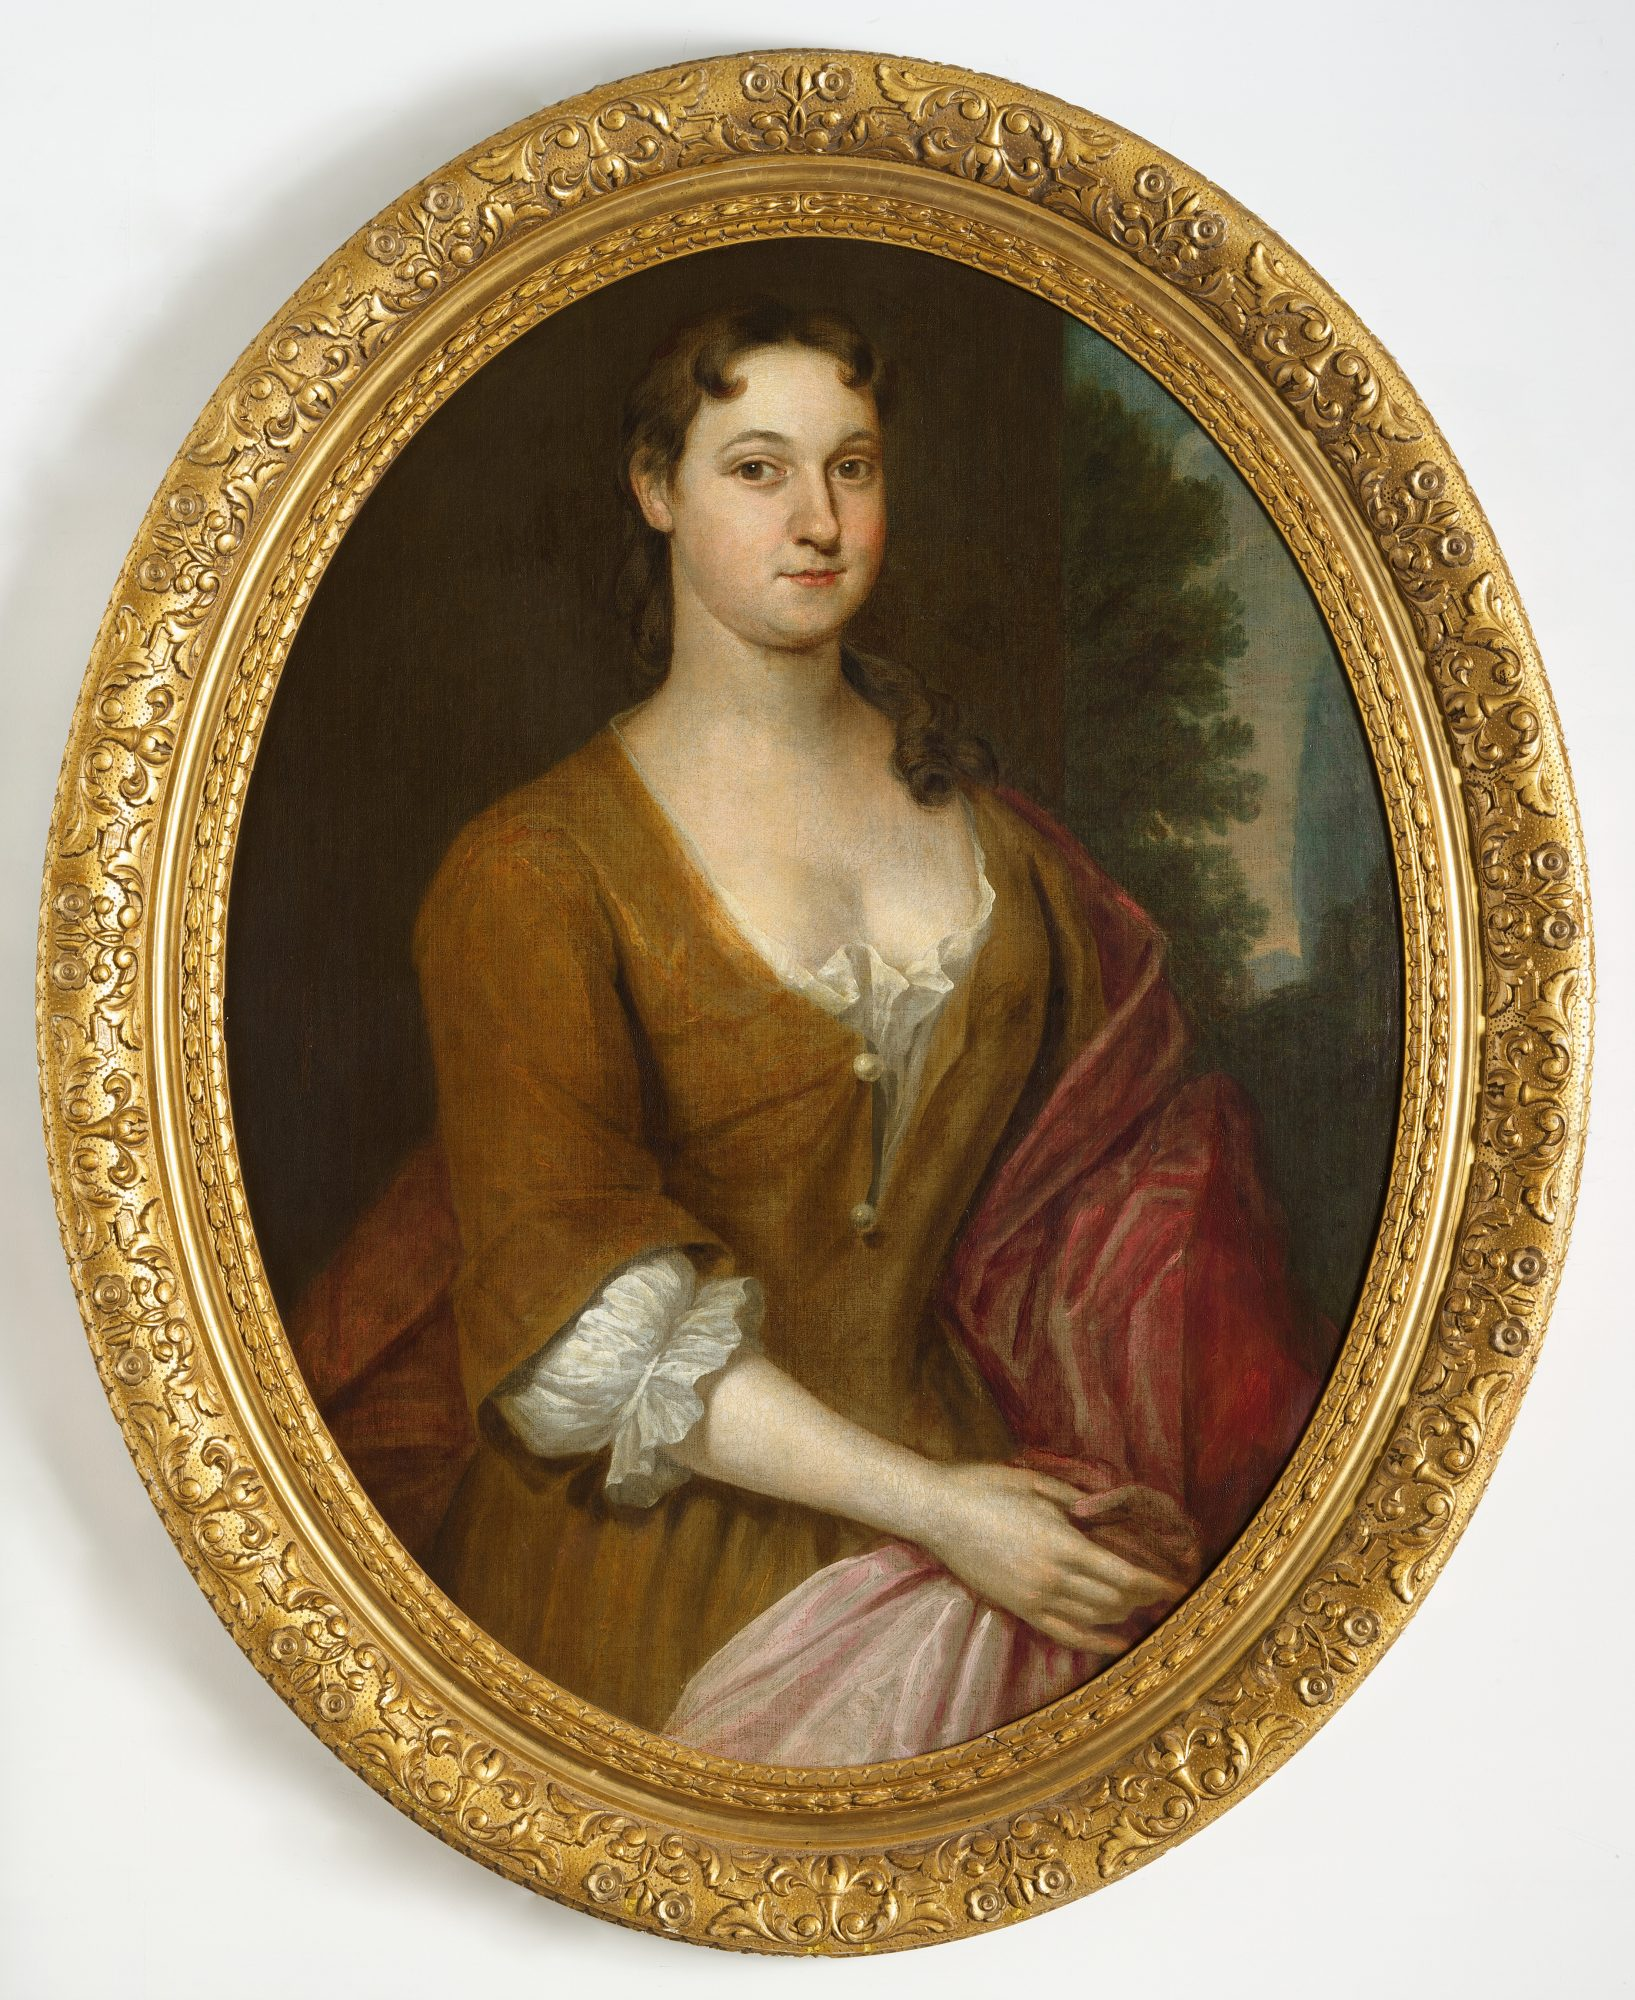 John Smibert (American, 1688–1751) Portrait of Sarah Belcher Lyde, c. 1735-1743. Oil on canvas. Museum purchase, Joseph O. Eaton Fund, M.2014.3